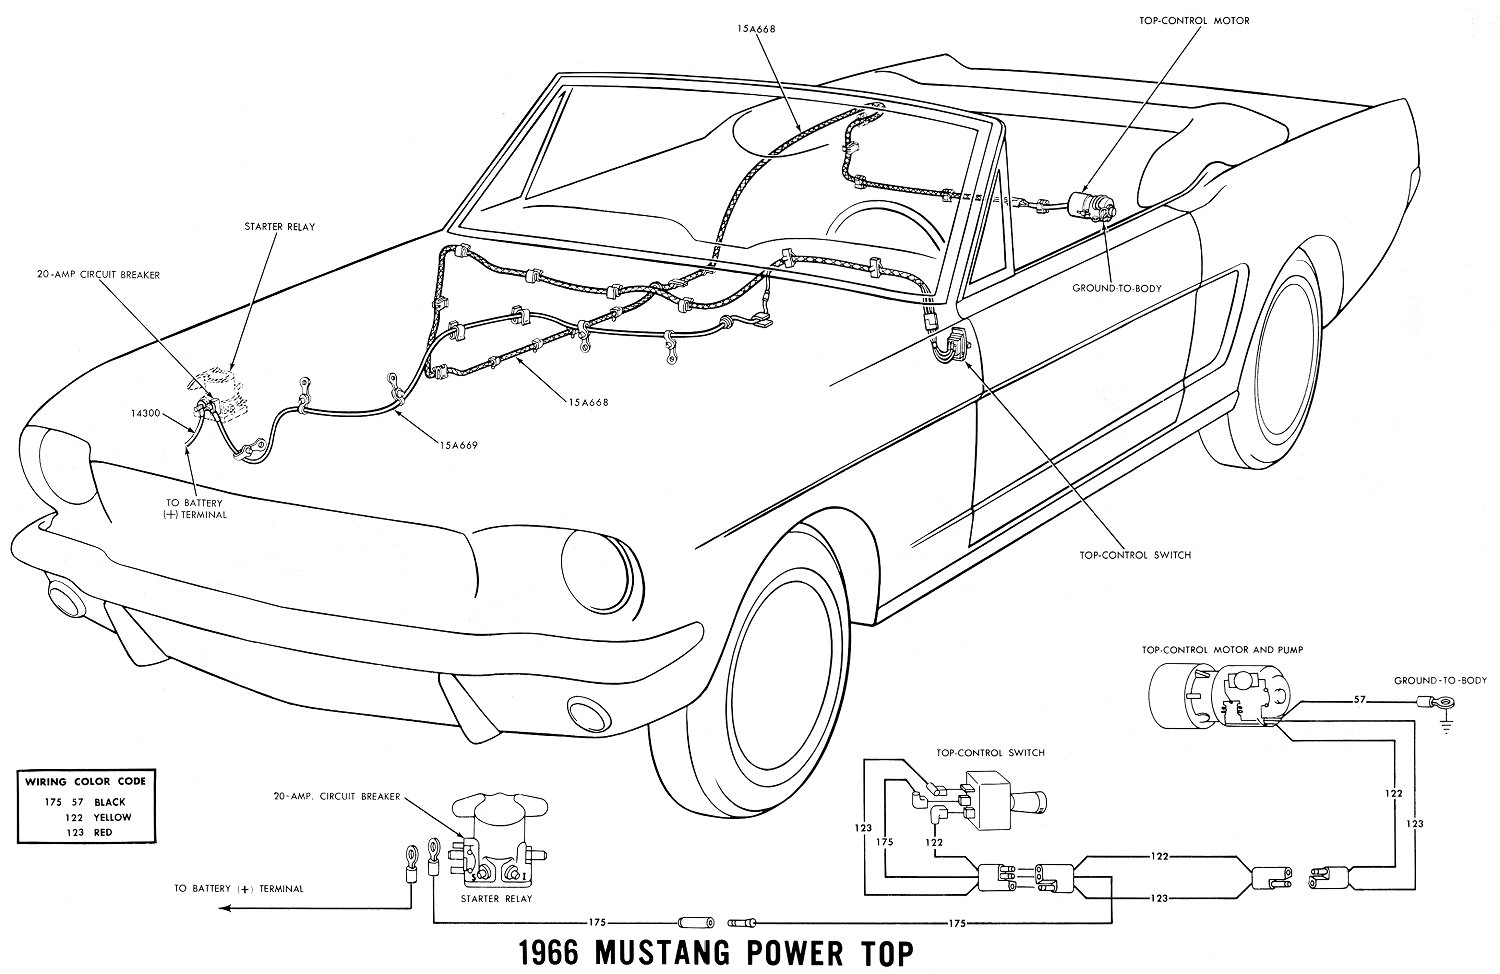 1966 mustang wiring diagrams average joe restoration rh averagejoerestoration com 1965 Mustang Color Wiring Diagram 1966 Mustang Alternator Wiring Diagram